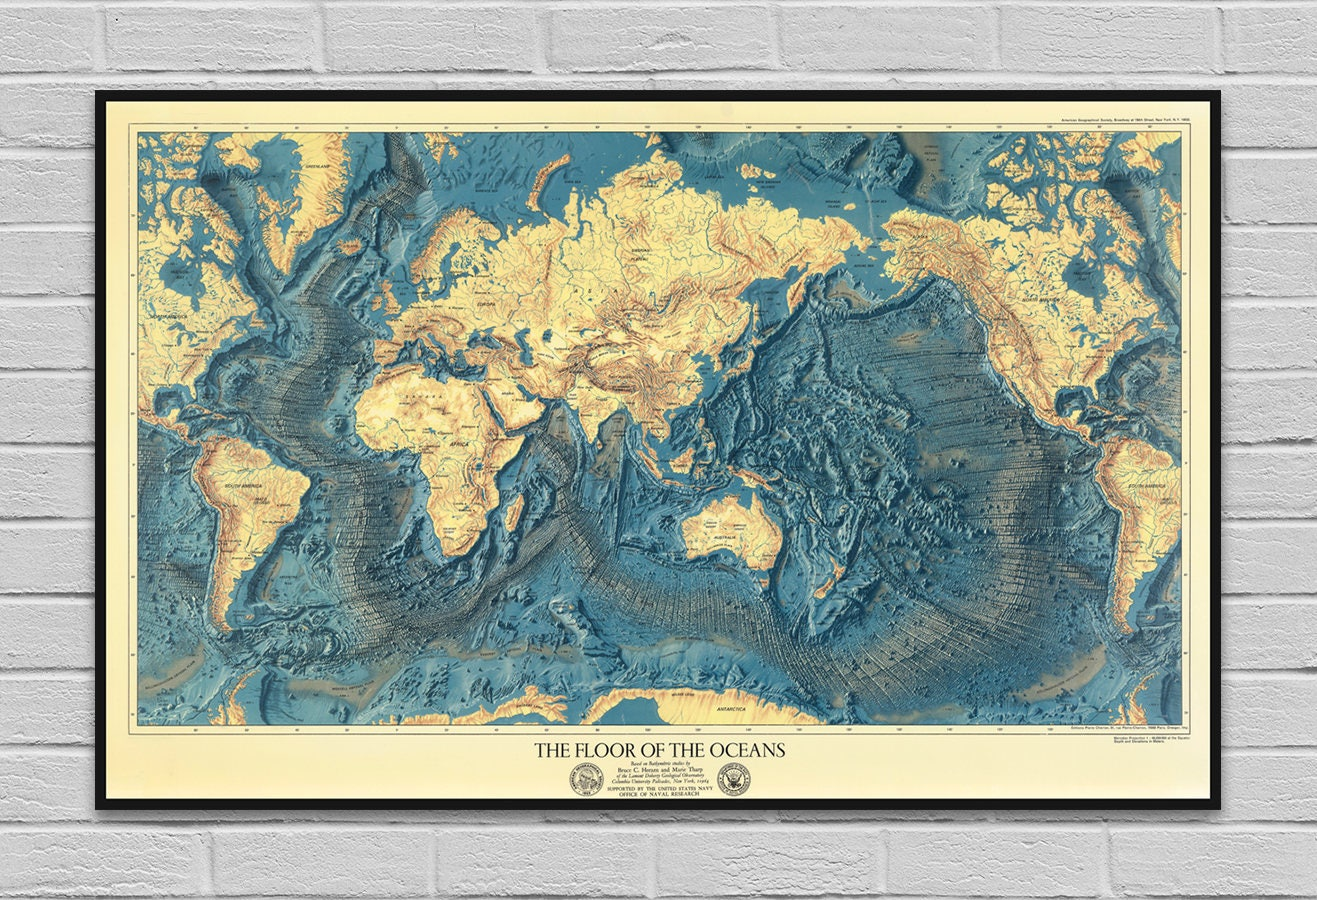 Map ocean floors lands relief old map poster vintage ampliar gumiabroncs Image collections